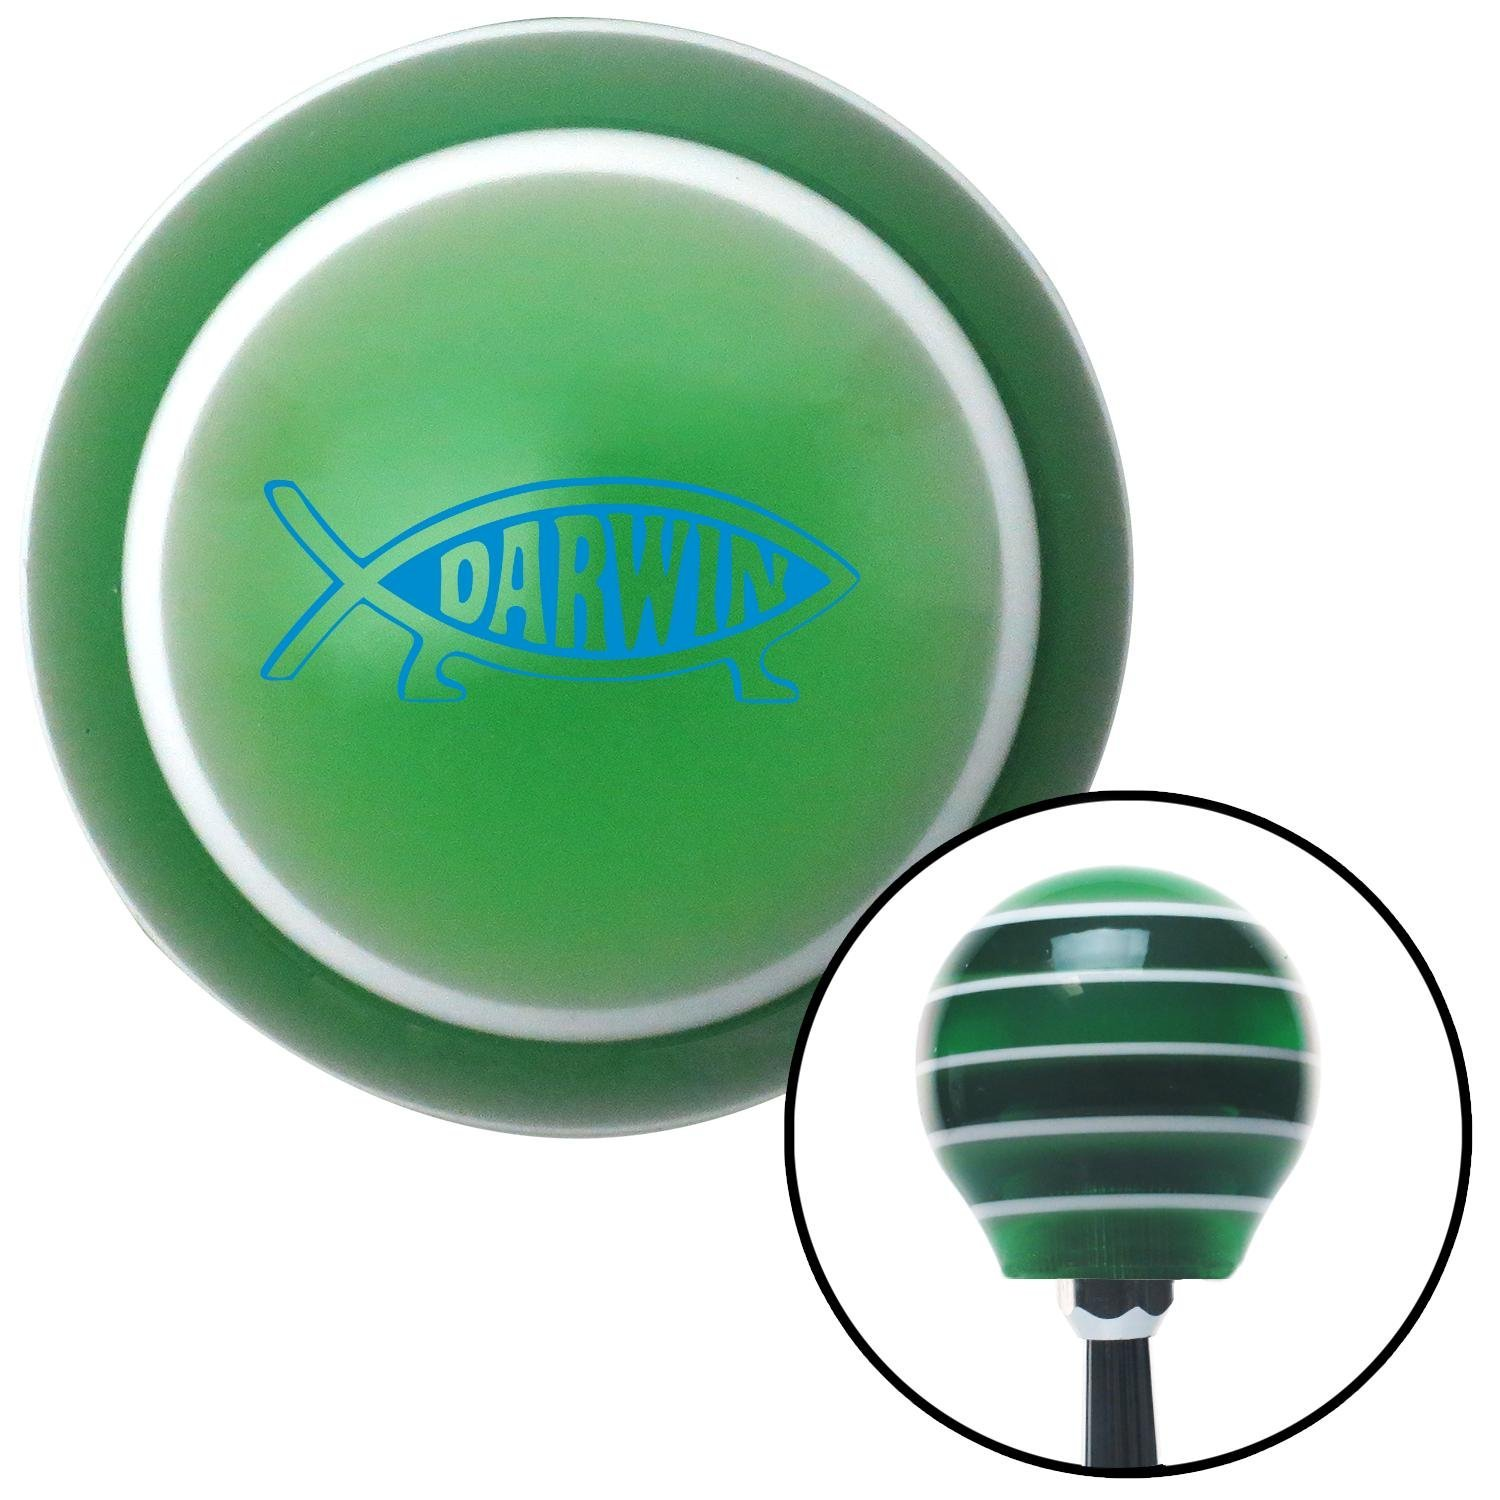 Blue Darwin Fish American Shifter 126490 Green Stripe Shift Knob with M16 x 1.5 Insert